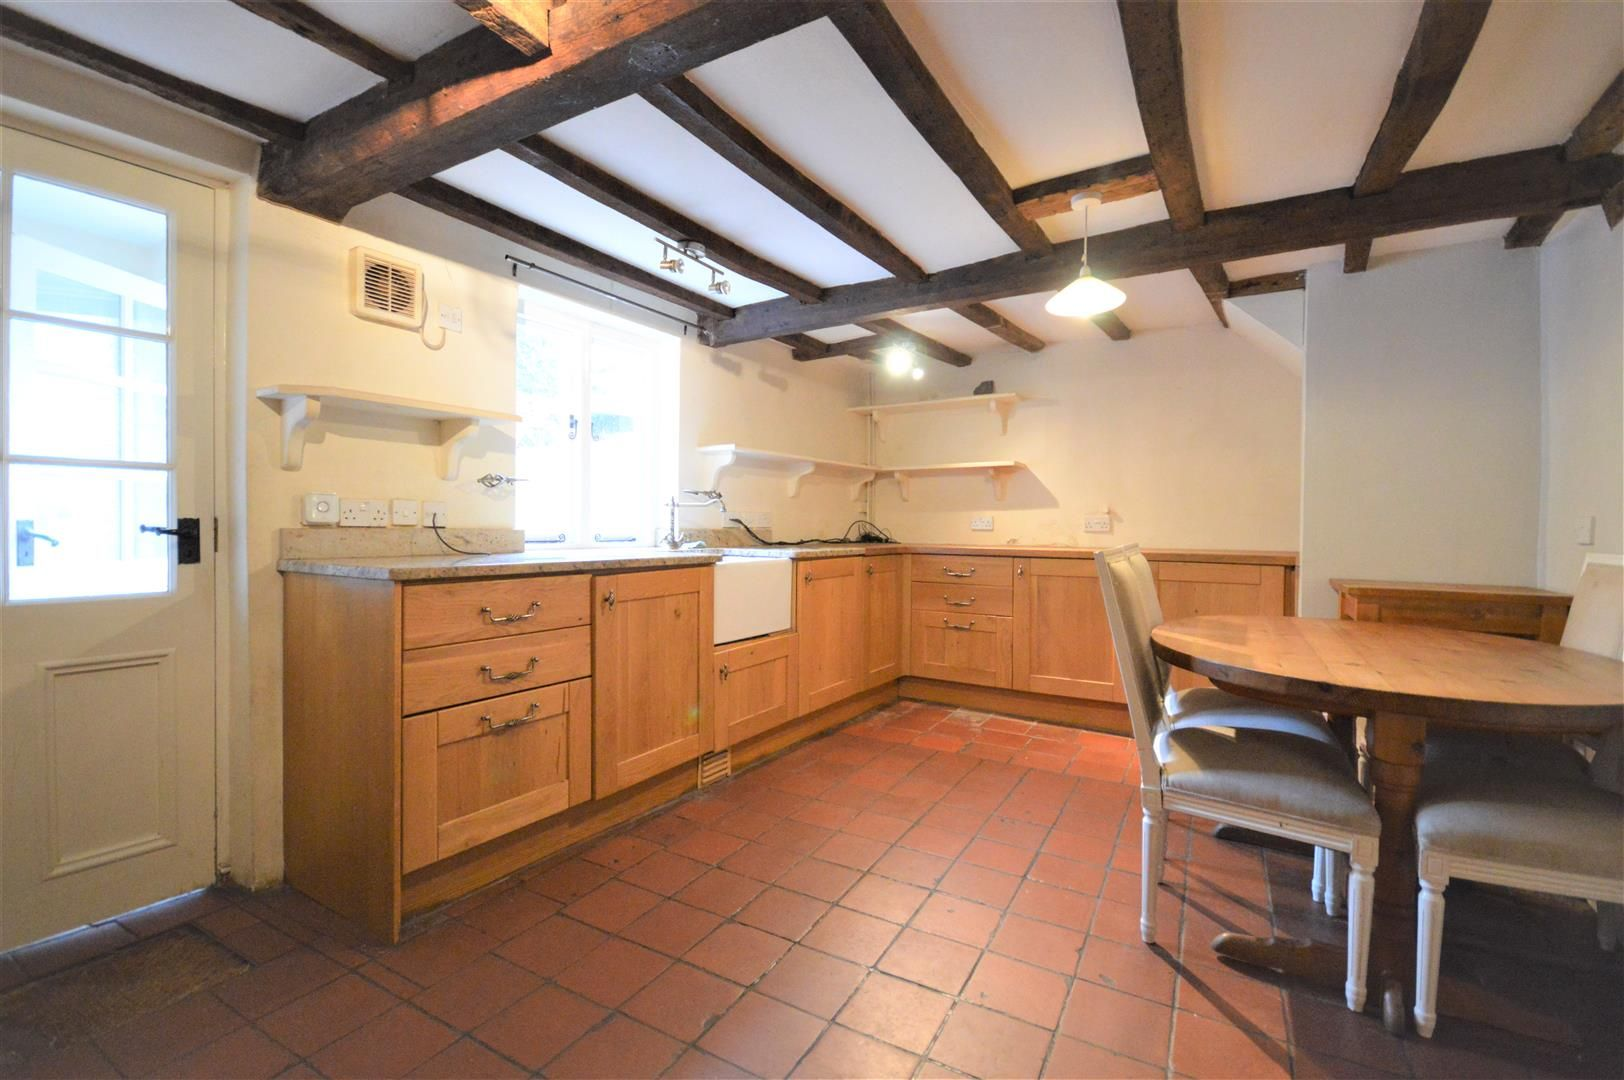 4 bed terraced for sale in Leominster 2